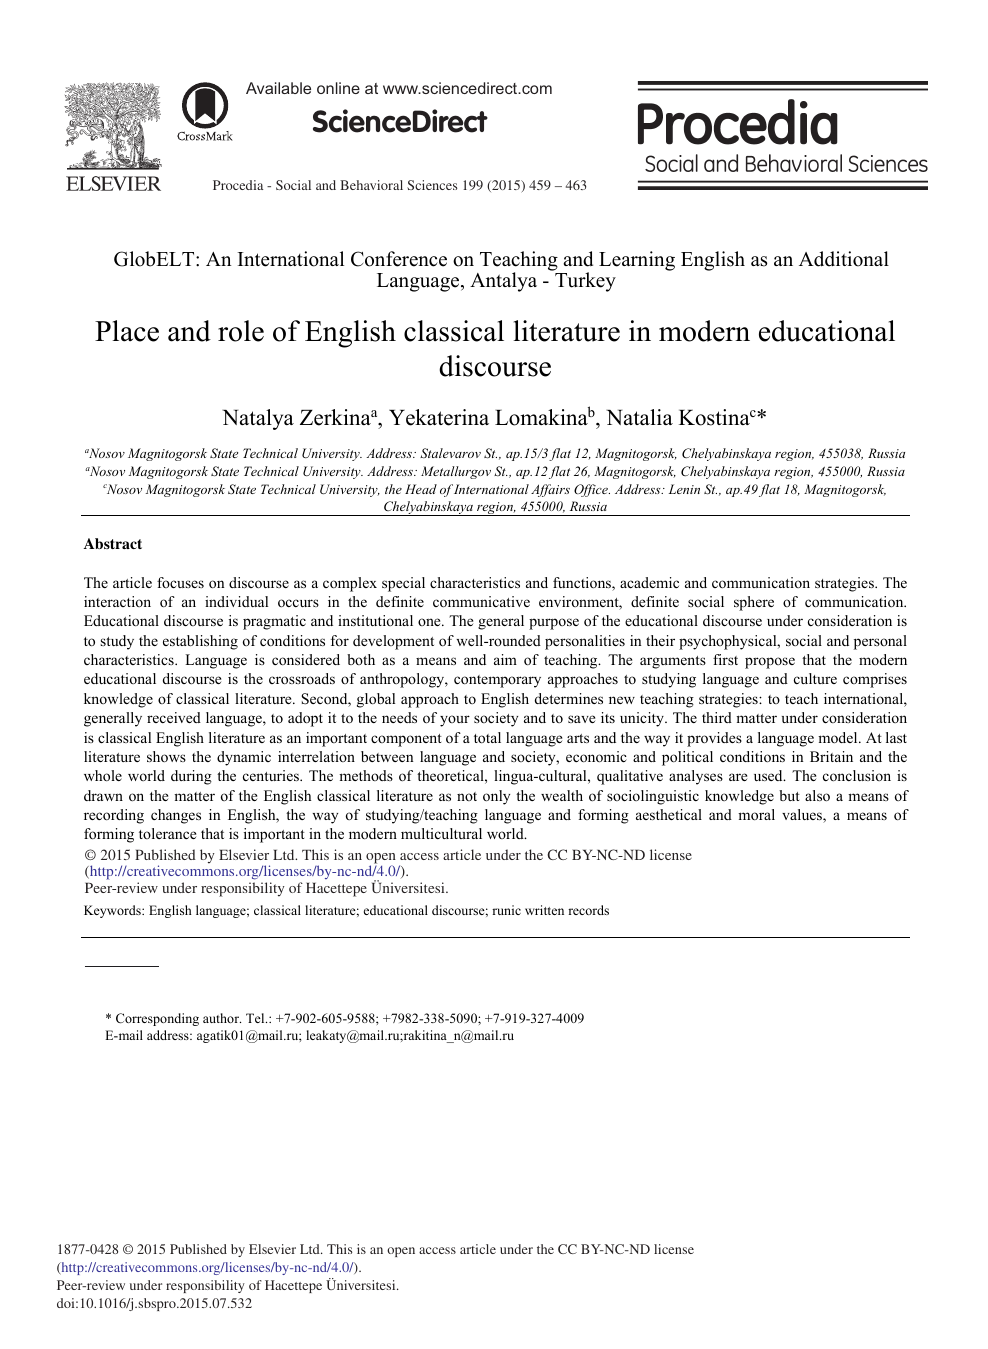 Place and Role of English Classical Literature in Modern